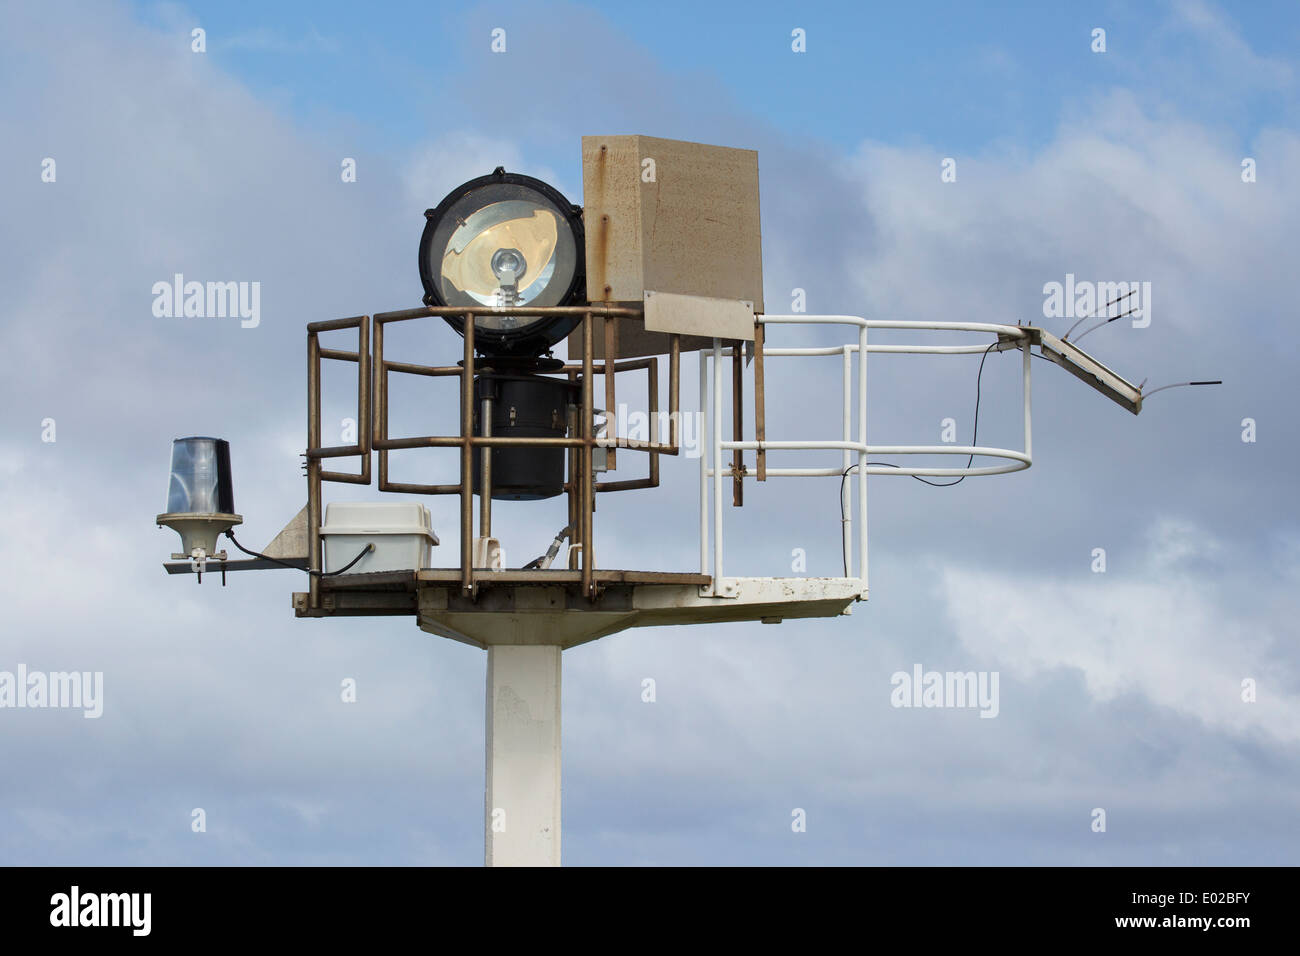 Kilauea automatic rotating beacon provides light for navigators. - Stock Image